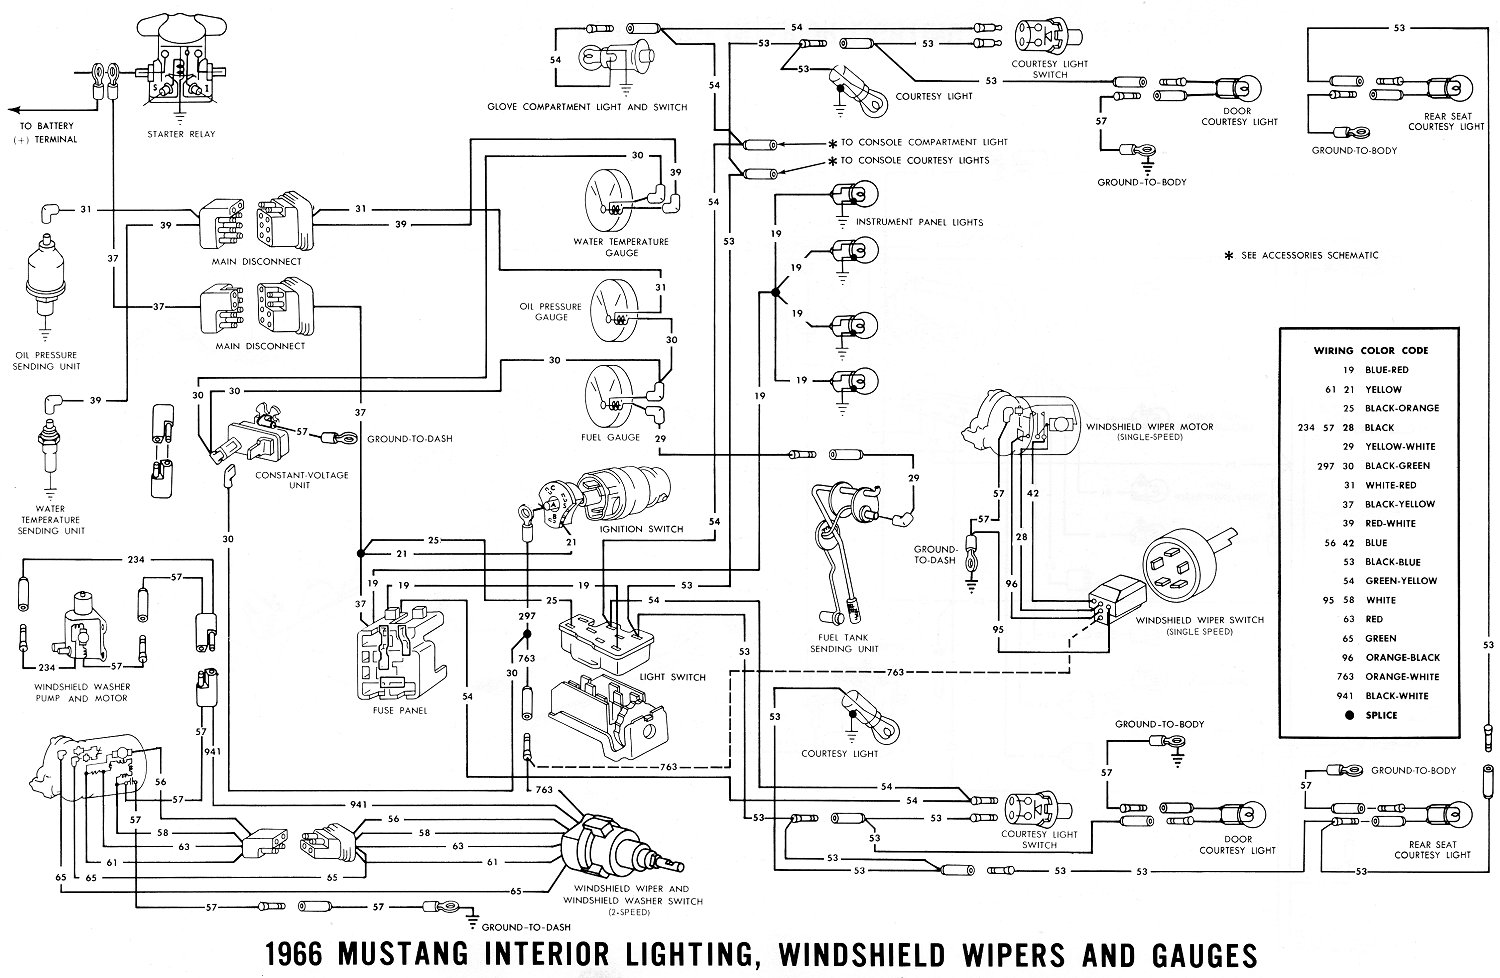 electrical diagram 1978 chevy truck with Wiring on 91 Ford F 250 Alternator Wiring Diagram together with gmtiltsteeringcolumn moreover Index php additionally Chevrolet Wiring Diagram Symbols Website together with 1977 Corvette Fuse Box Wiring Diagram.